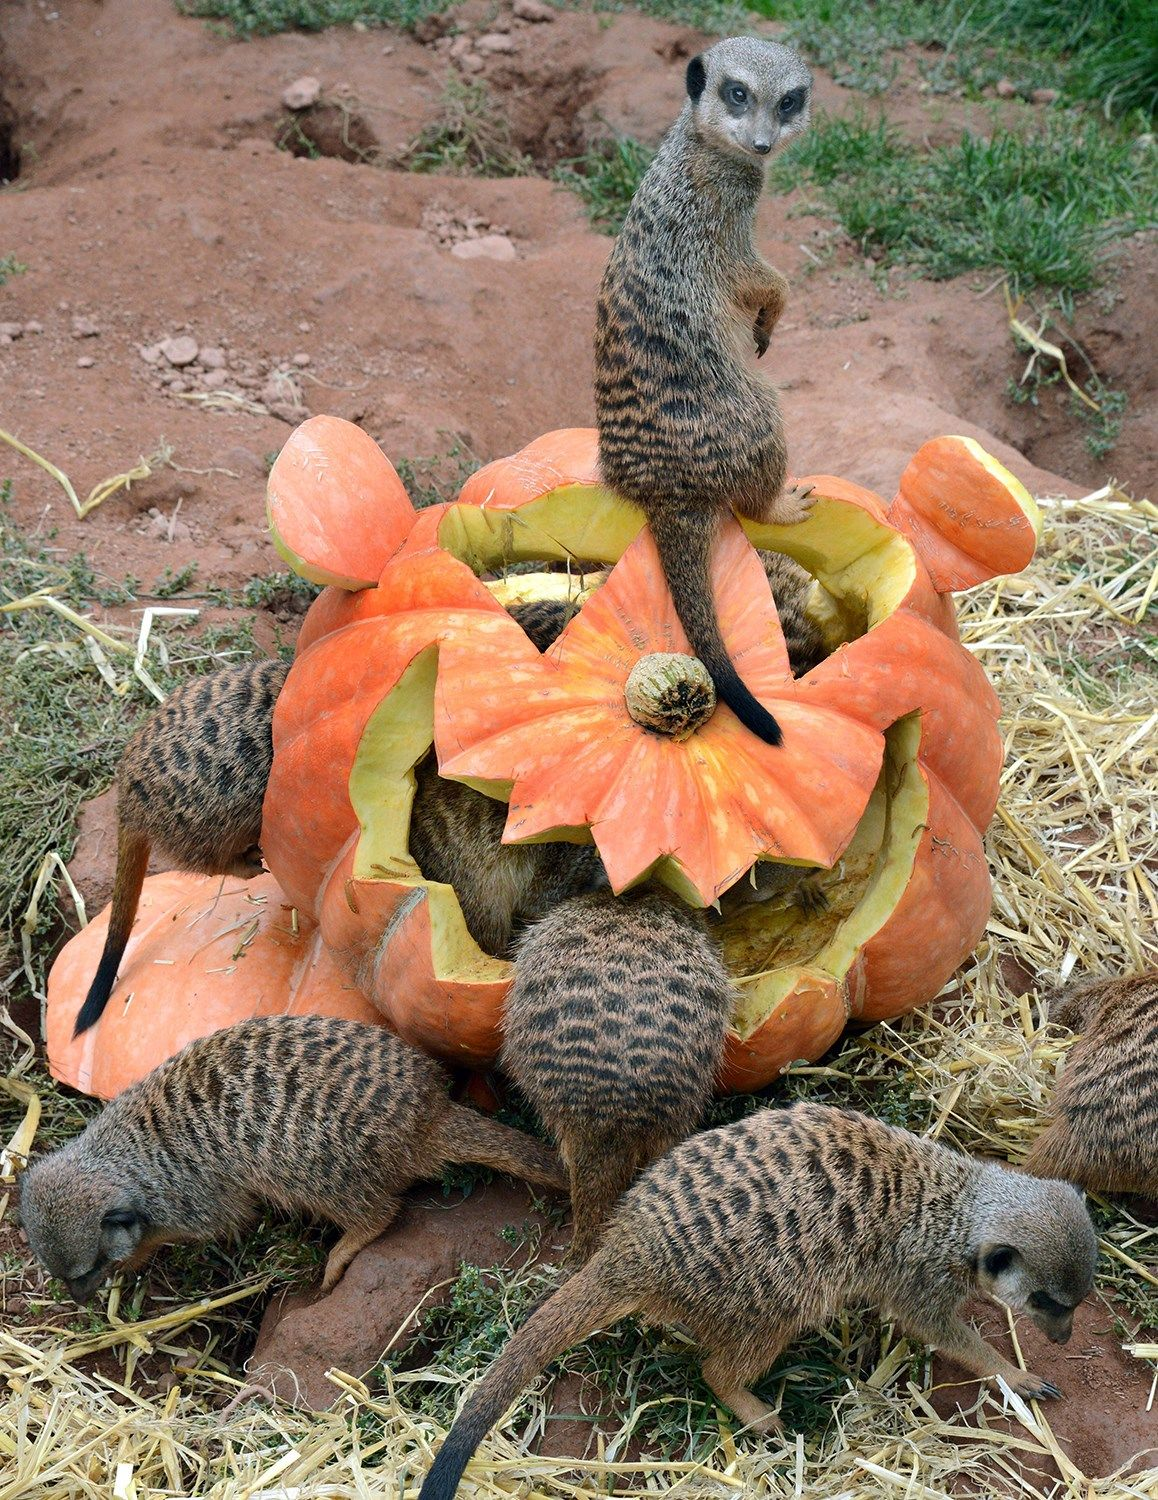 Oh my gourd! Adorable zoo animals play with Halloween